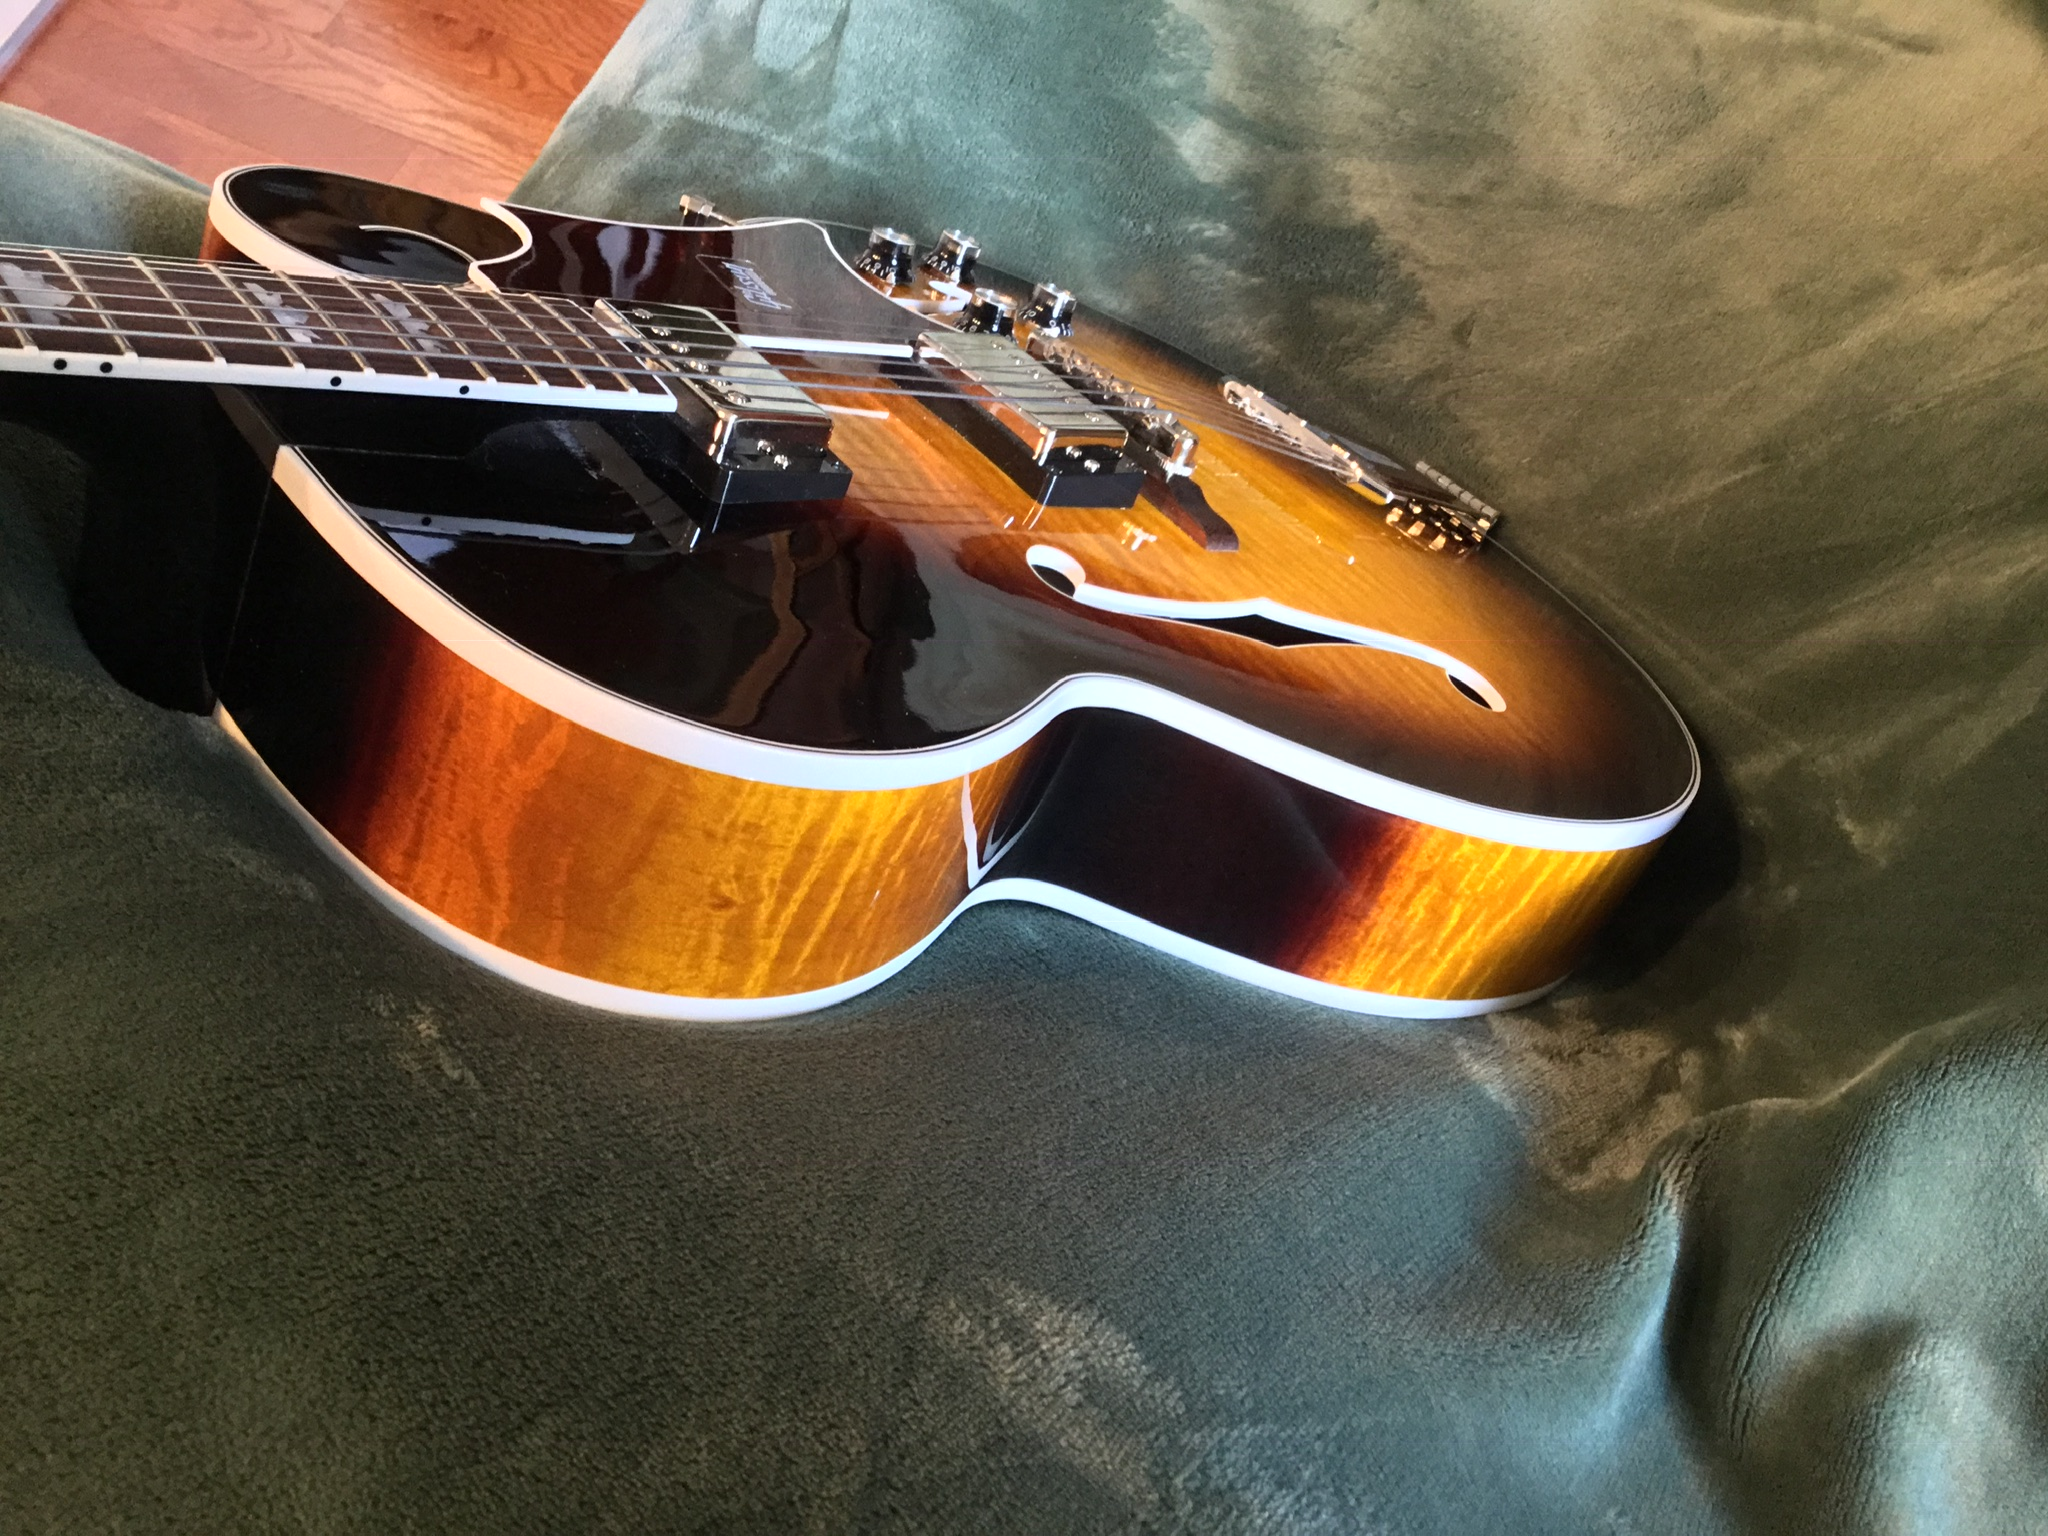 Very special NGD: One of Tal's - Tal Farlow-81e7a530-9bd8-4faf-8632-009ffc4537c9-jpeg